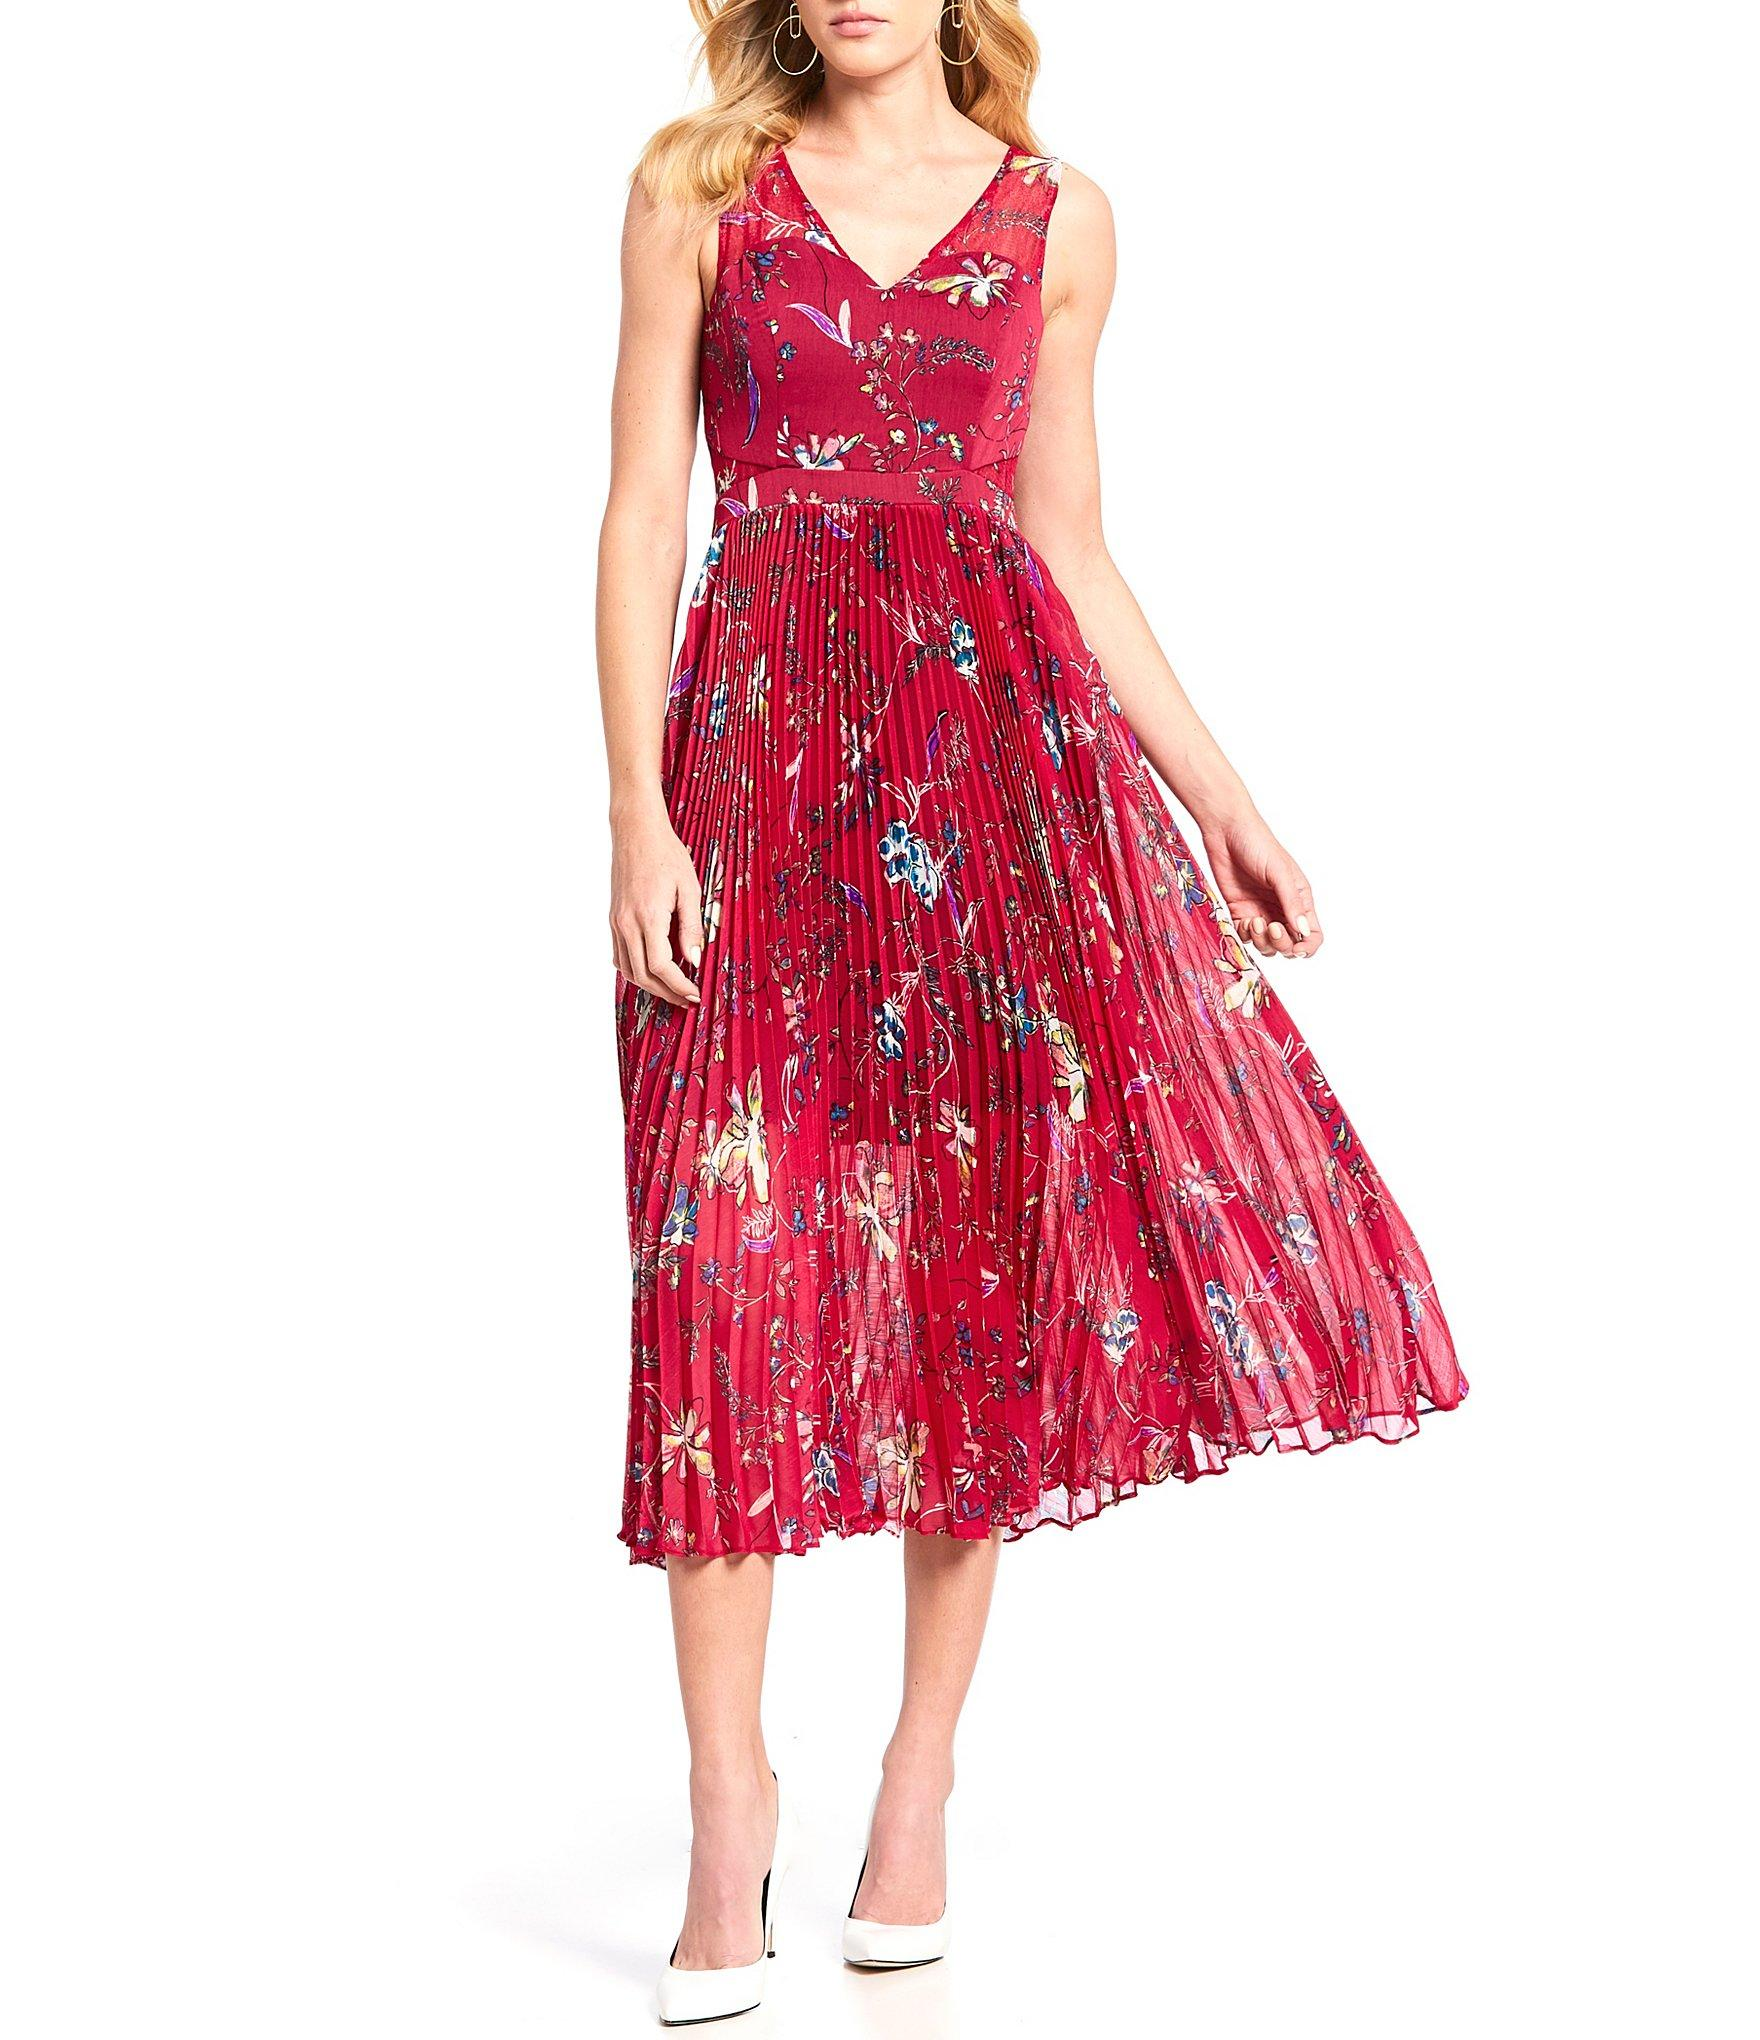 37a262d286 Guess - Red Floral Print Pleated Fit & Flare V-neck Chiffon Midi Dress -.  View fullscreen